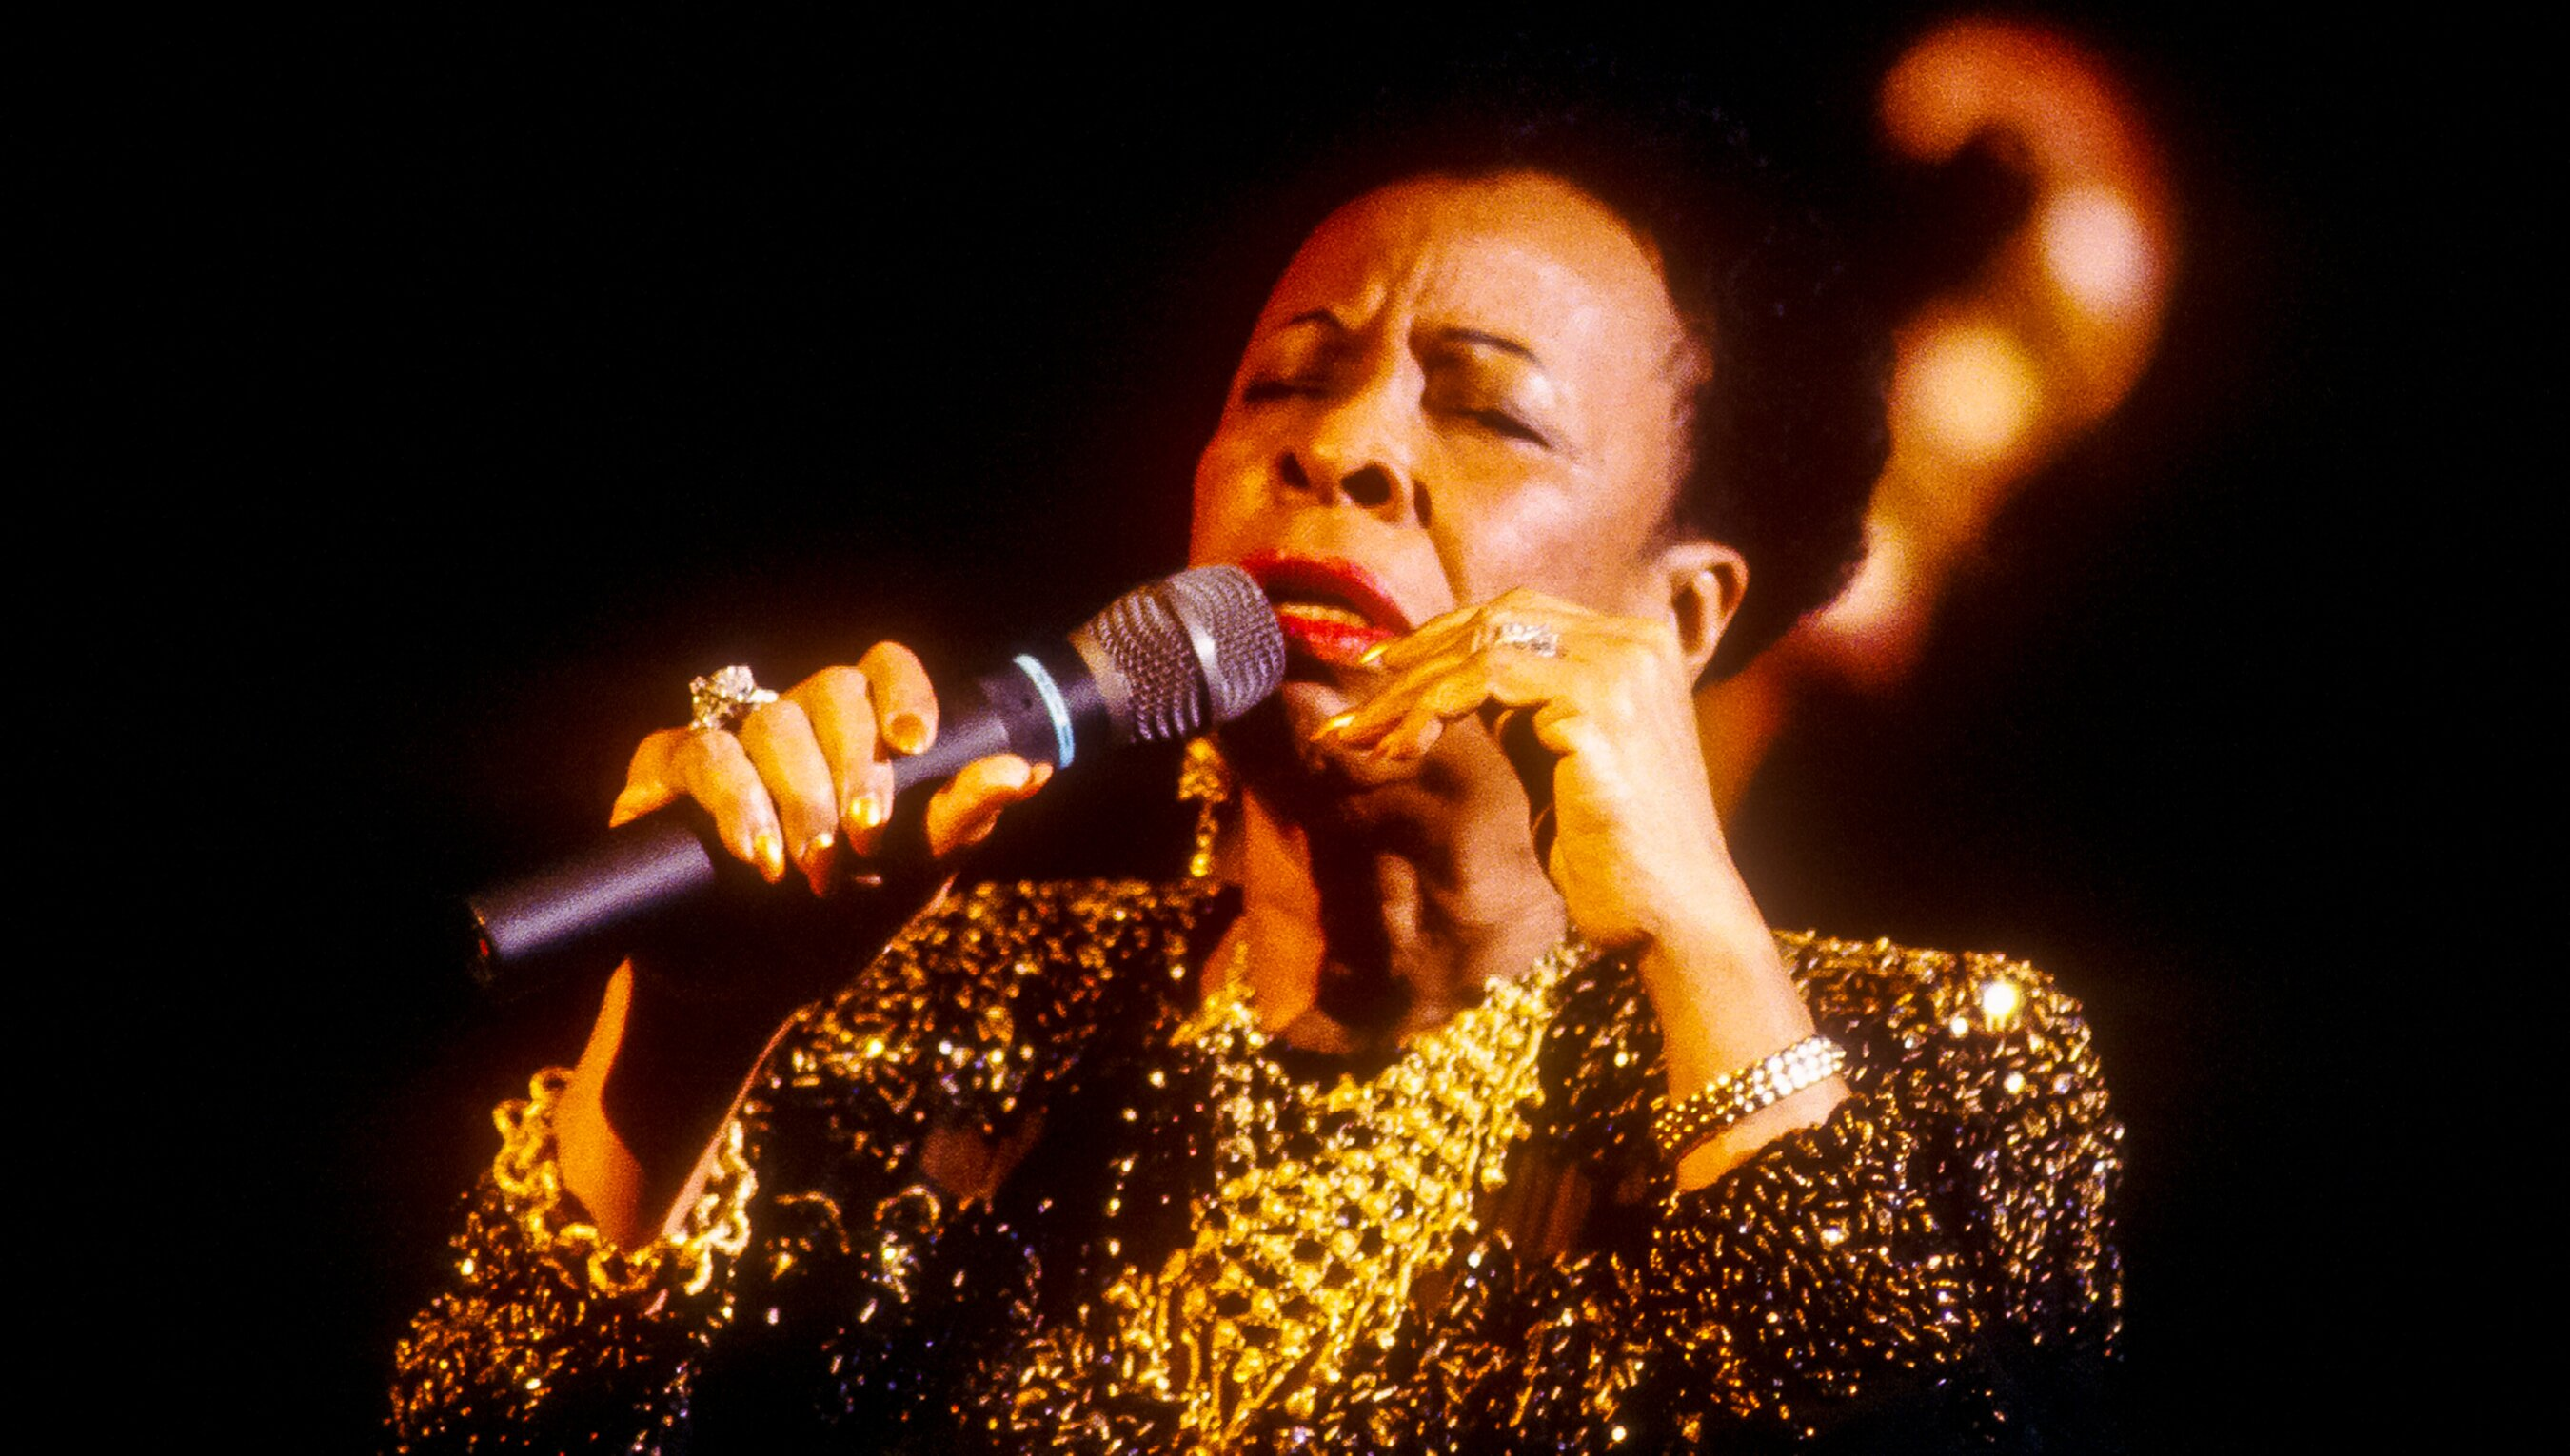 The jazz singer's mind shows us how to improvise through life itself | Psyche